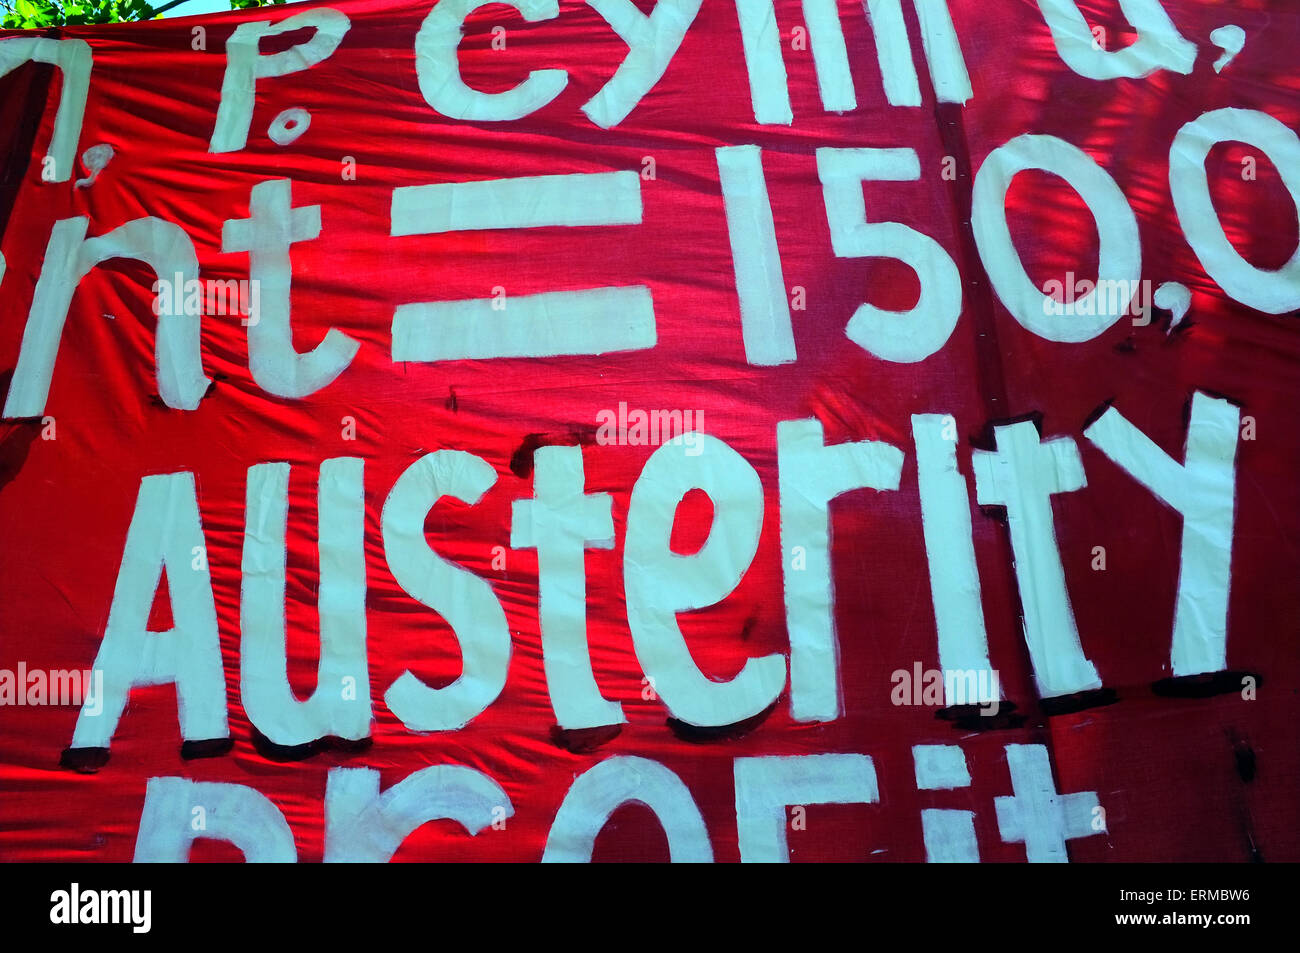 A giant red and white Austerity protest banner held up during an anti-austerity demonstration in Bristol. - Stock Image